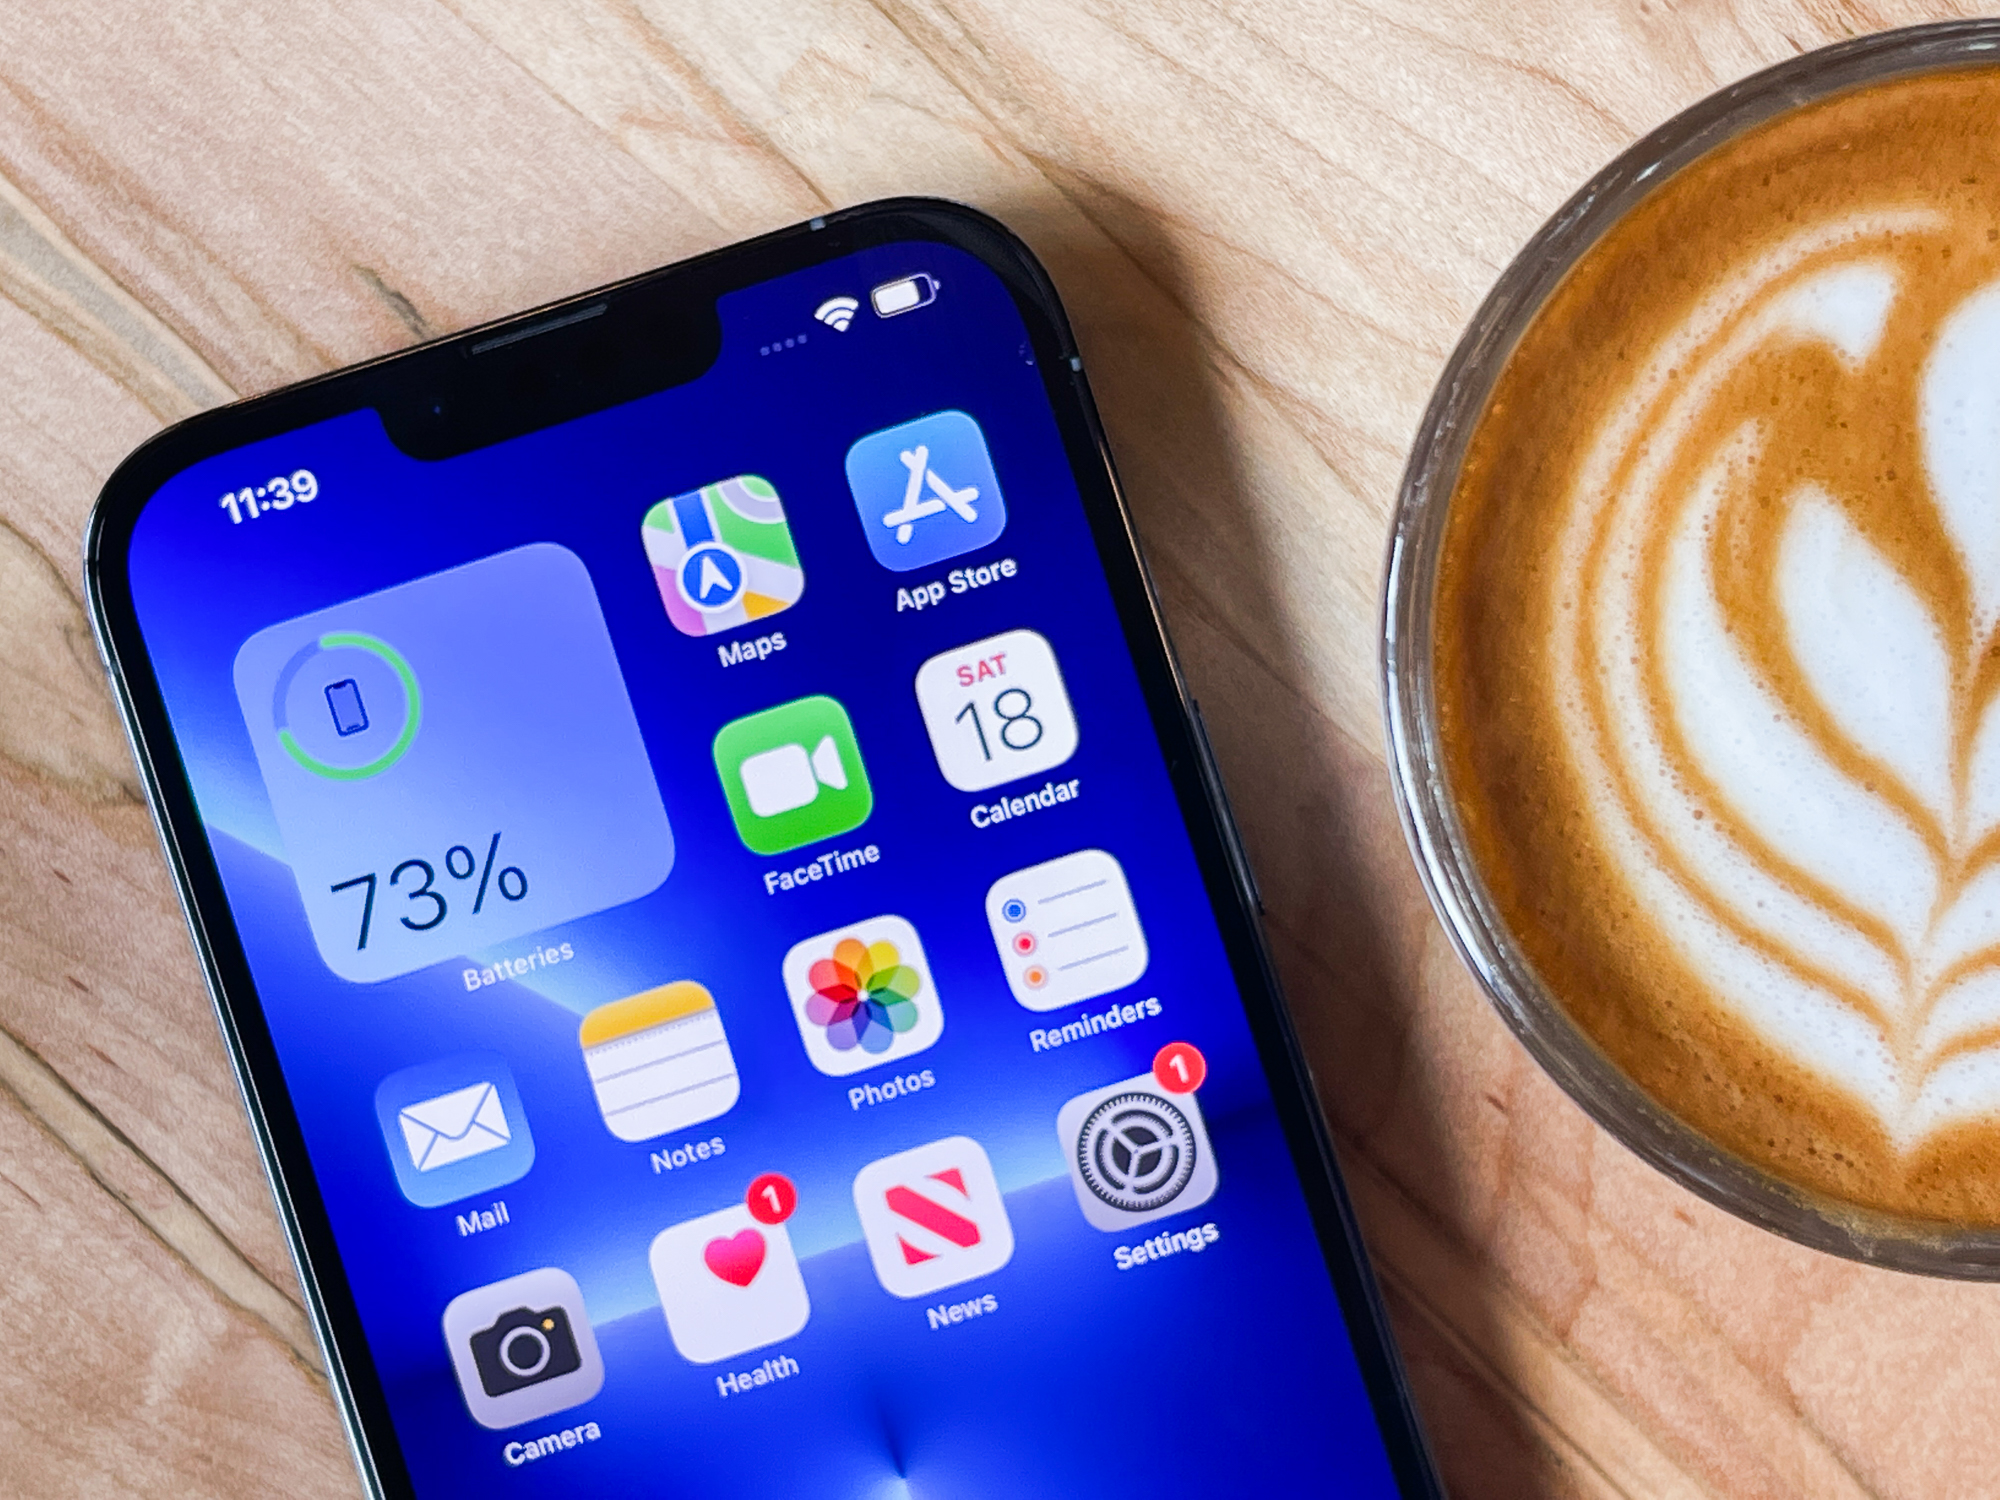 iphone-13-pro-max-cnet-2021-review-33